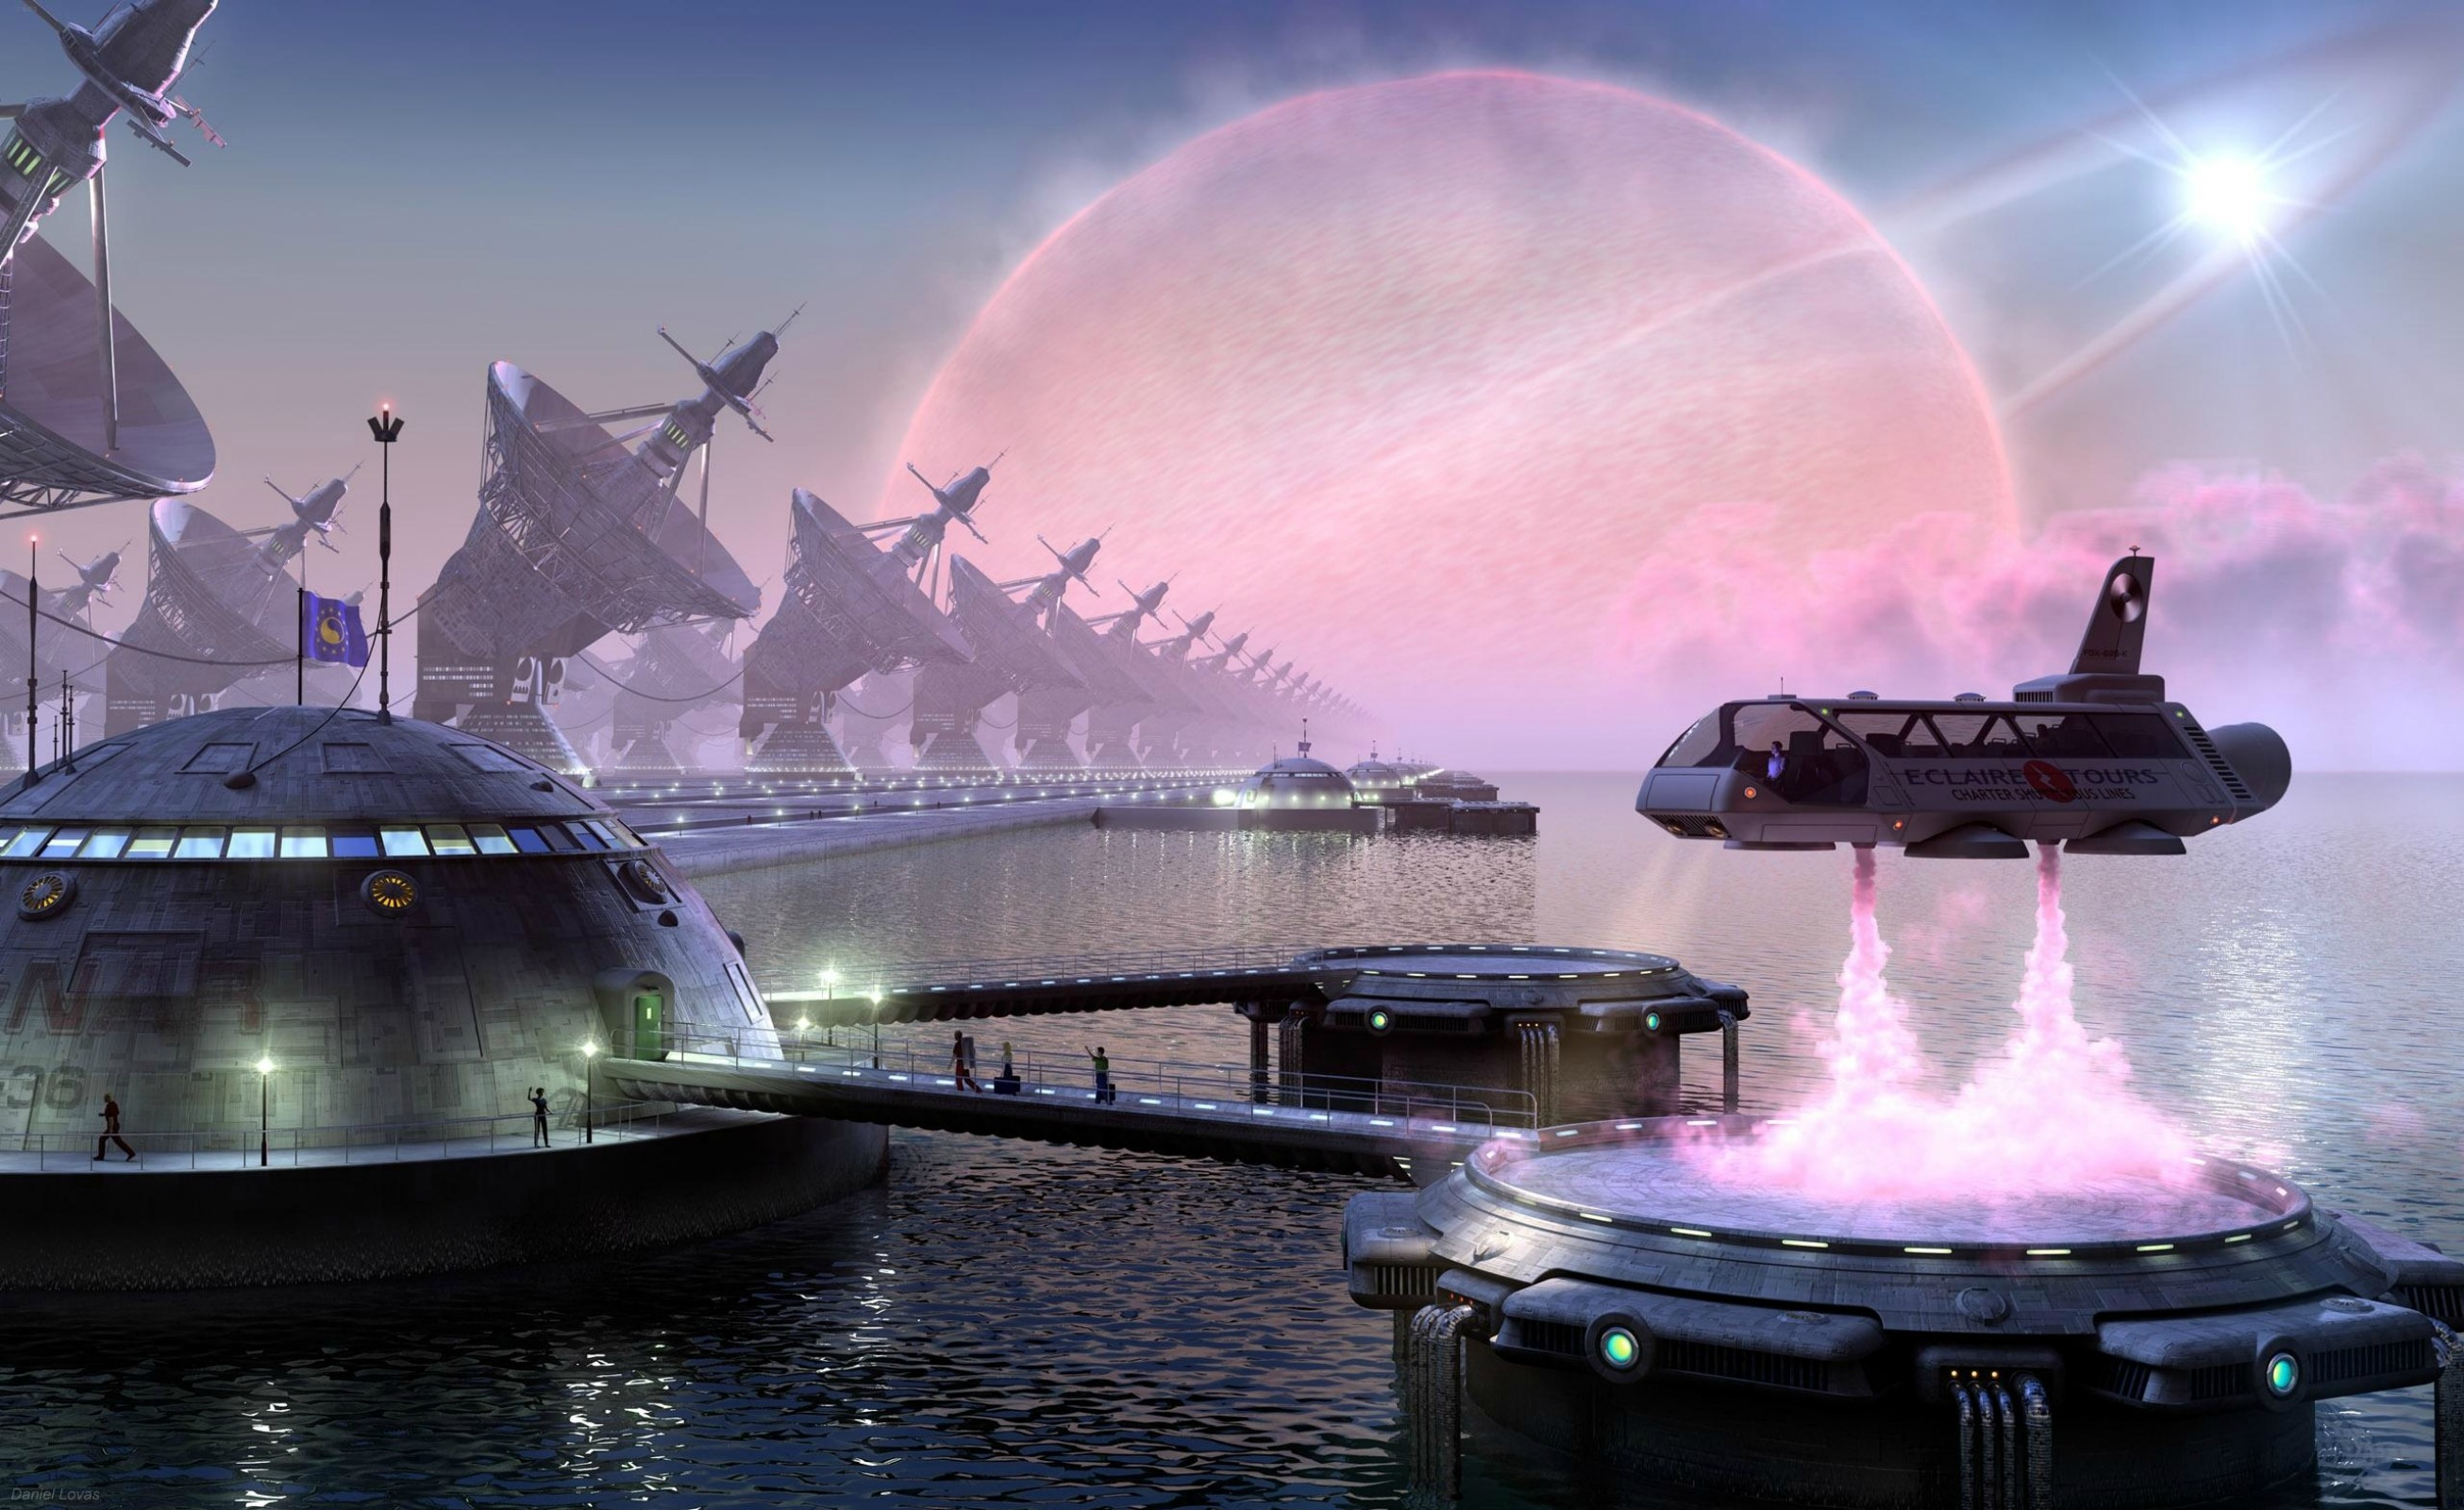 Spaceport Backgrounds, Compatible - PC, Mobile, Gadgets  2611x1600 px